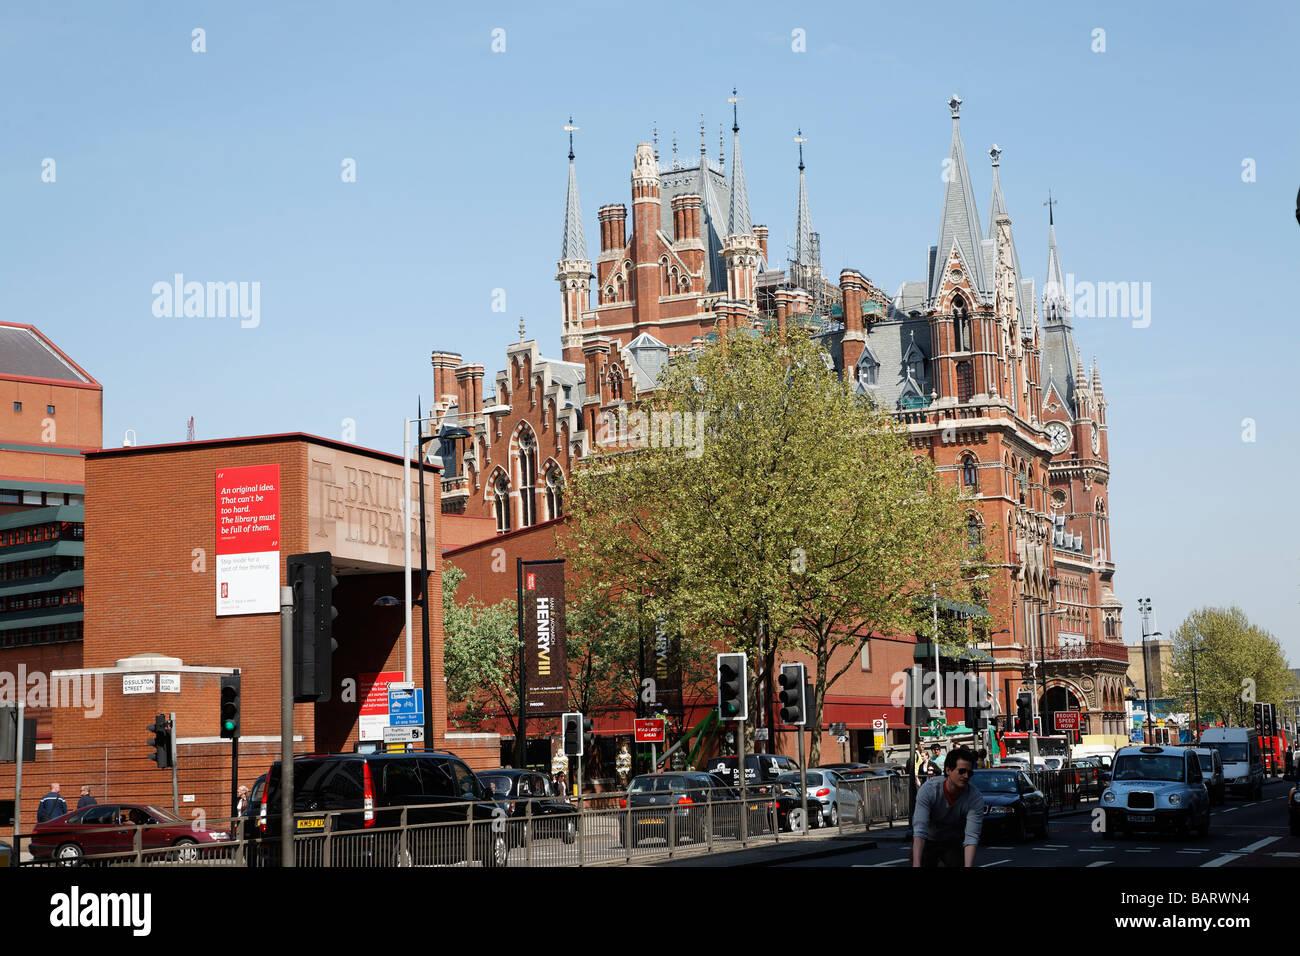 St Pancras station, Euston Road, London, England - Stock Image